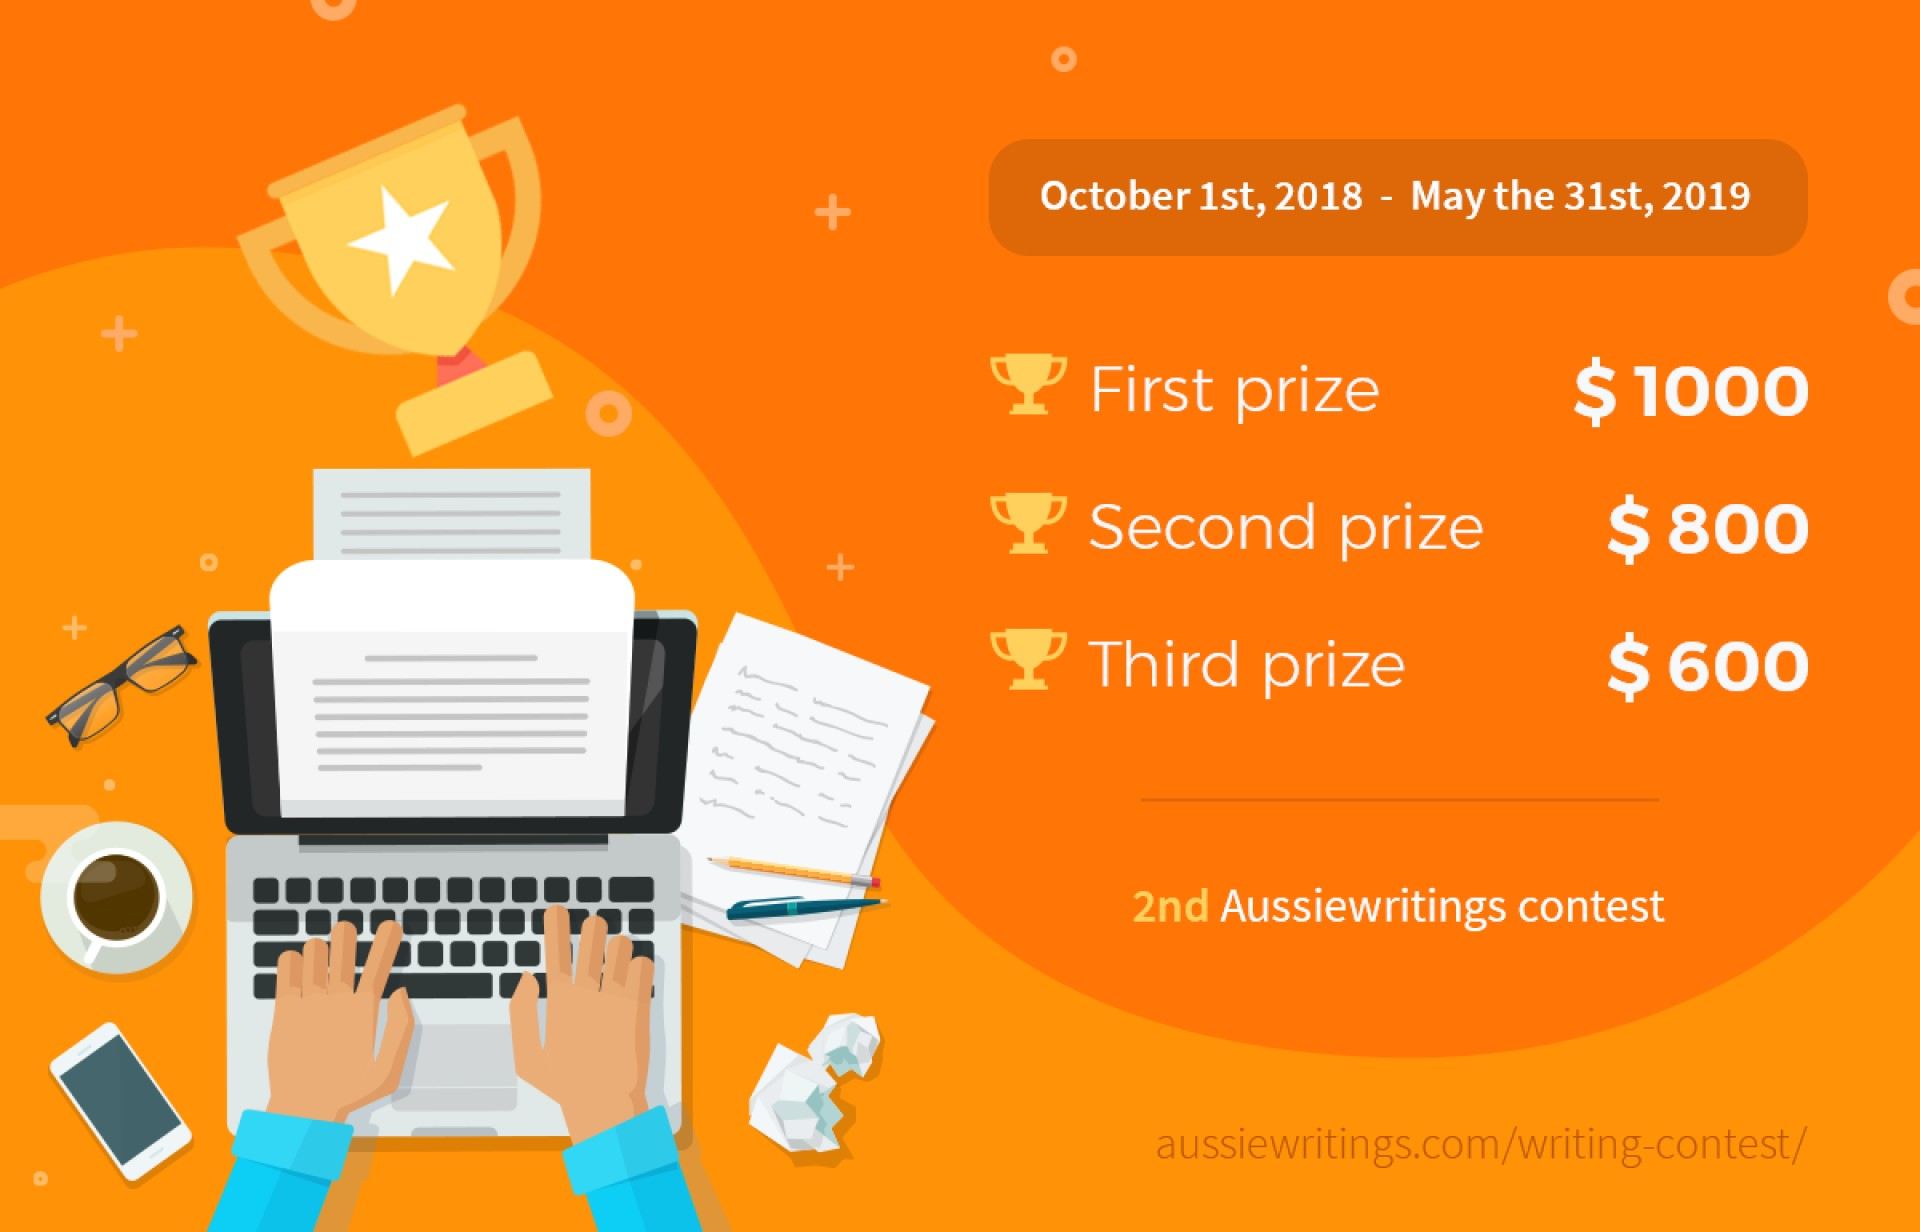 005 Essay Example Writing Incredible Contest International Competitions For High School Students Rules By Essayhub 1920